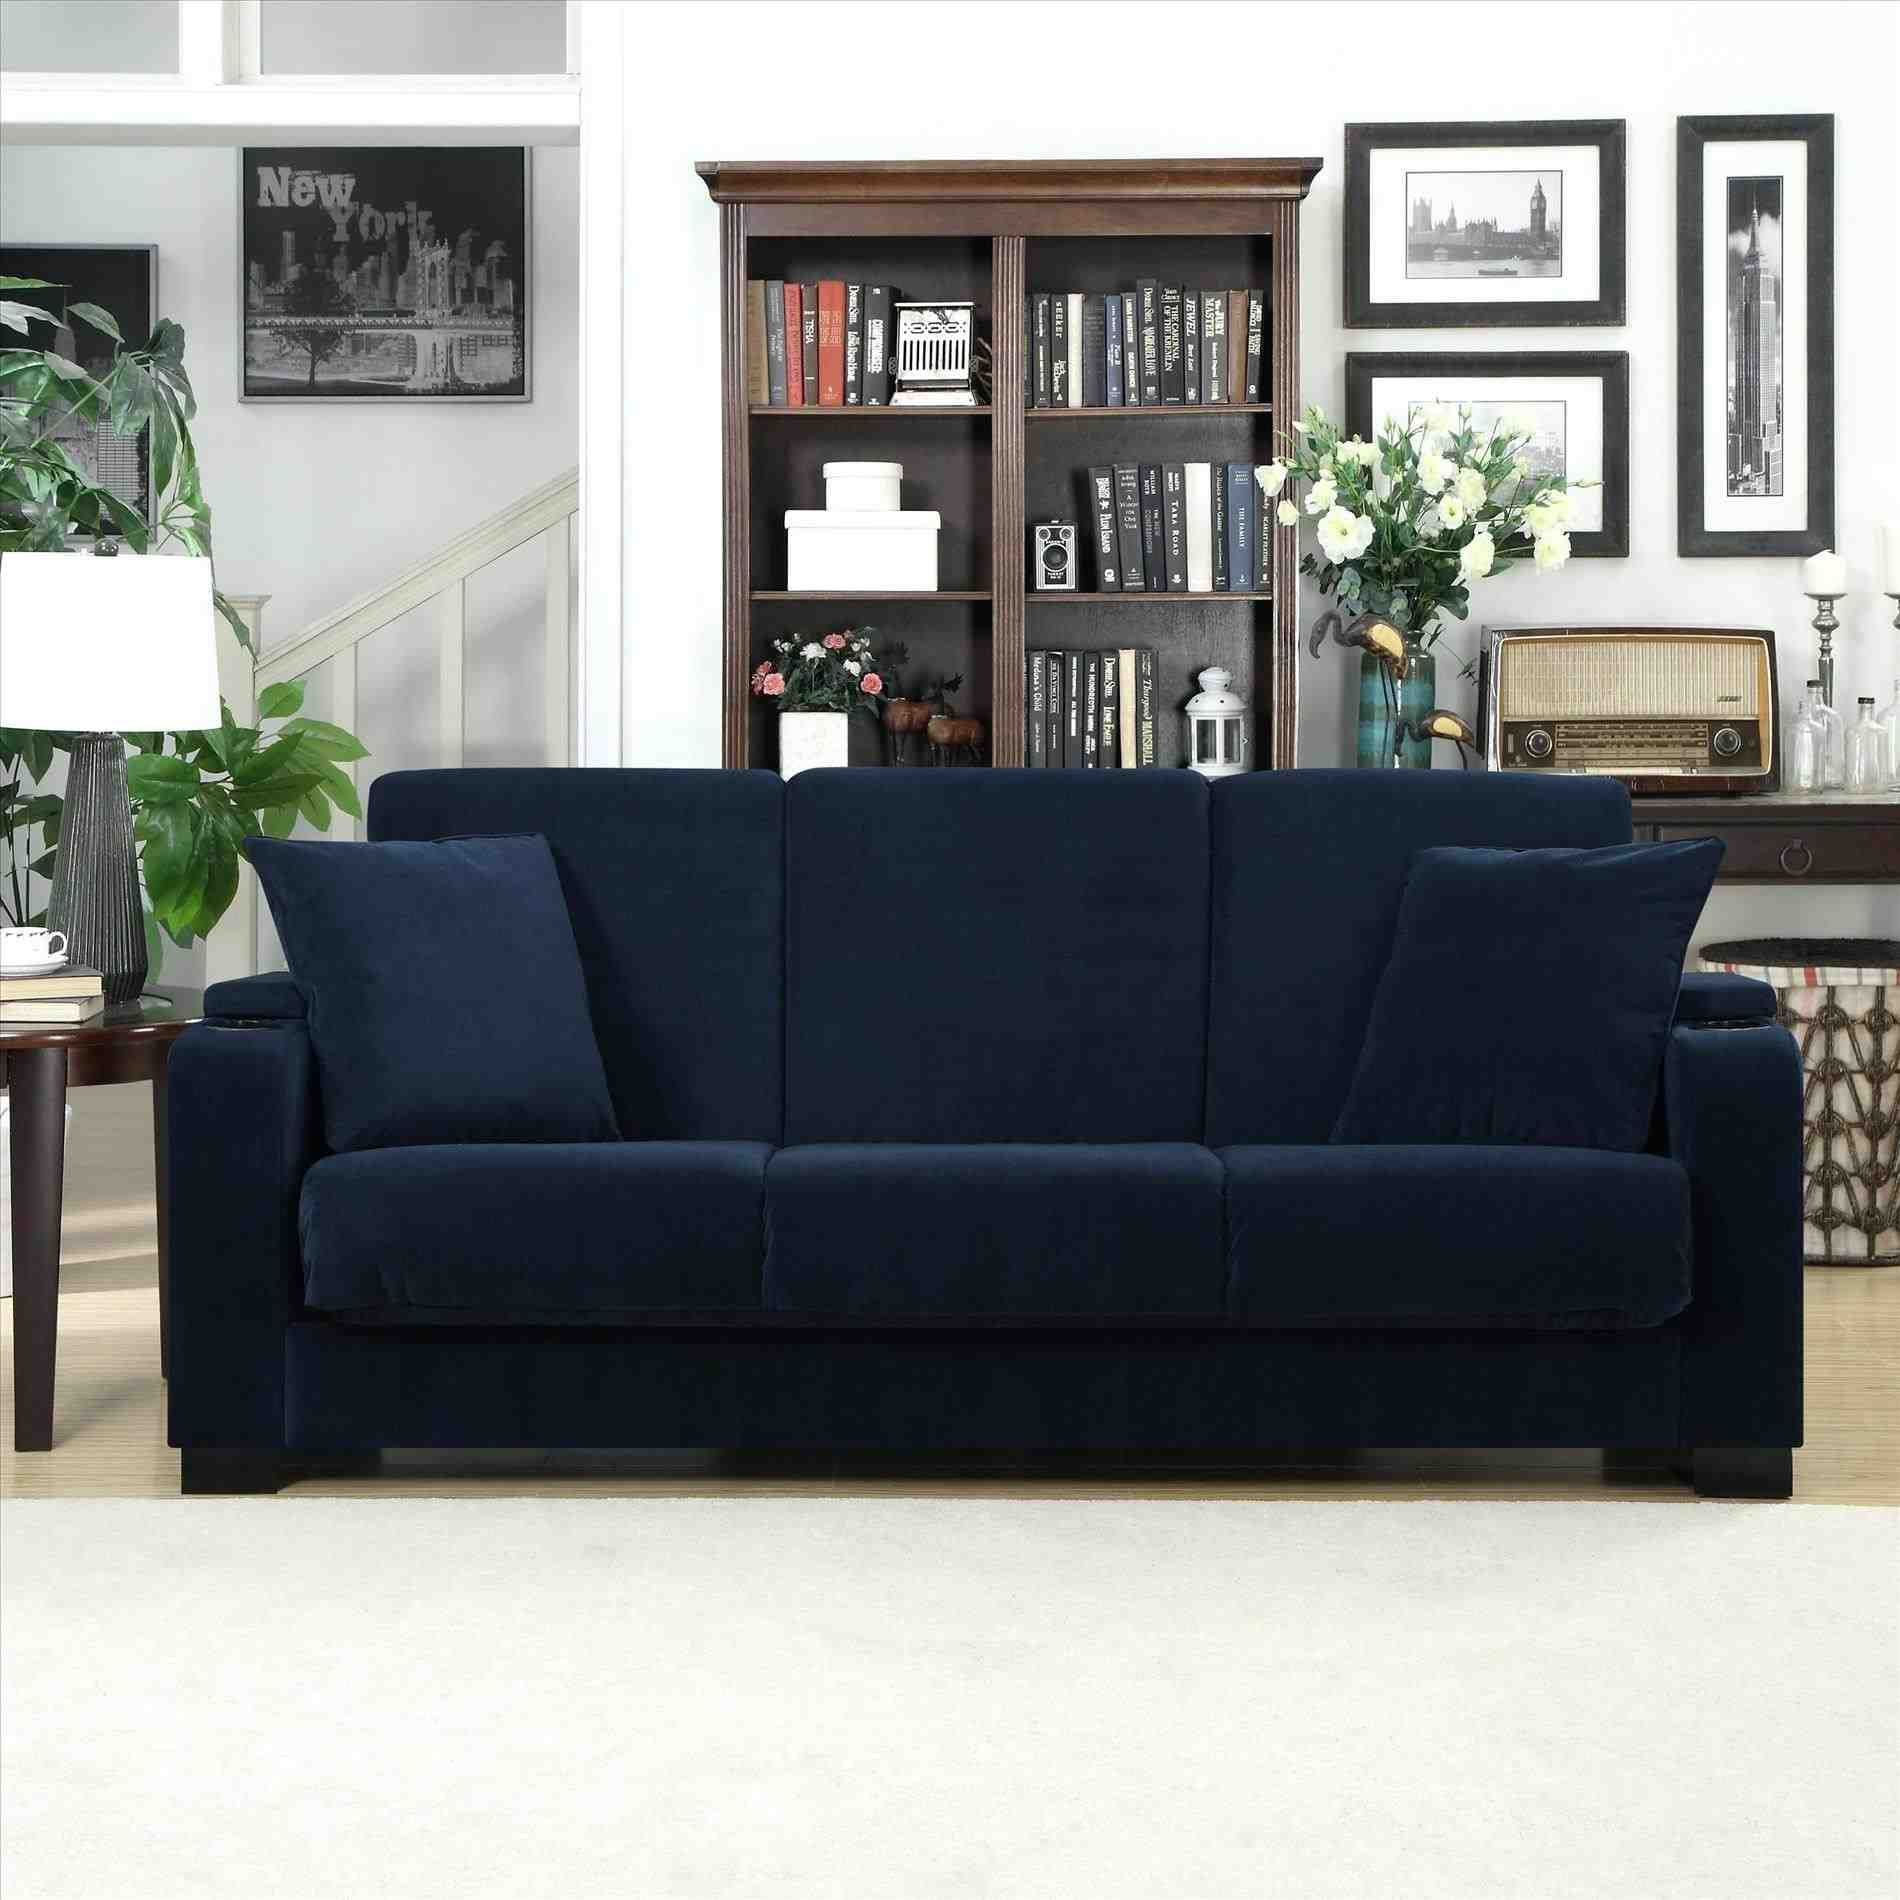 Best Cheap Sofa Deals Uk Cheap Sofas Sleeper Sofa Cheap Couch 400 x 300